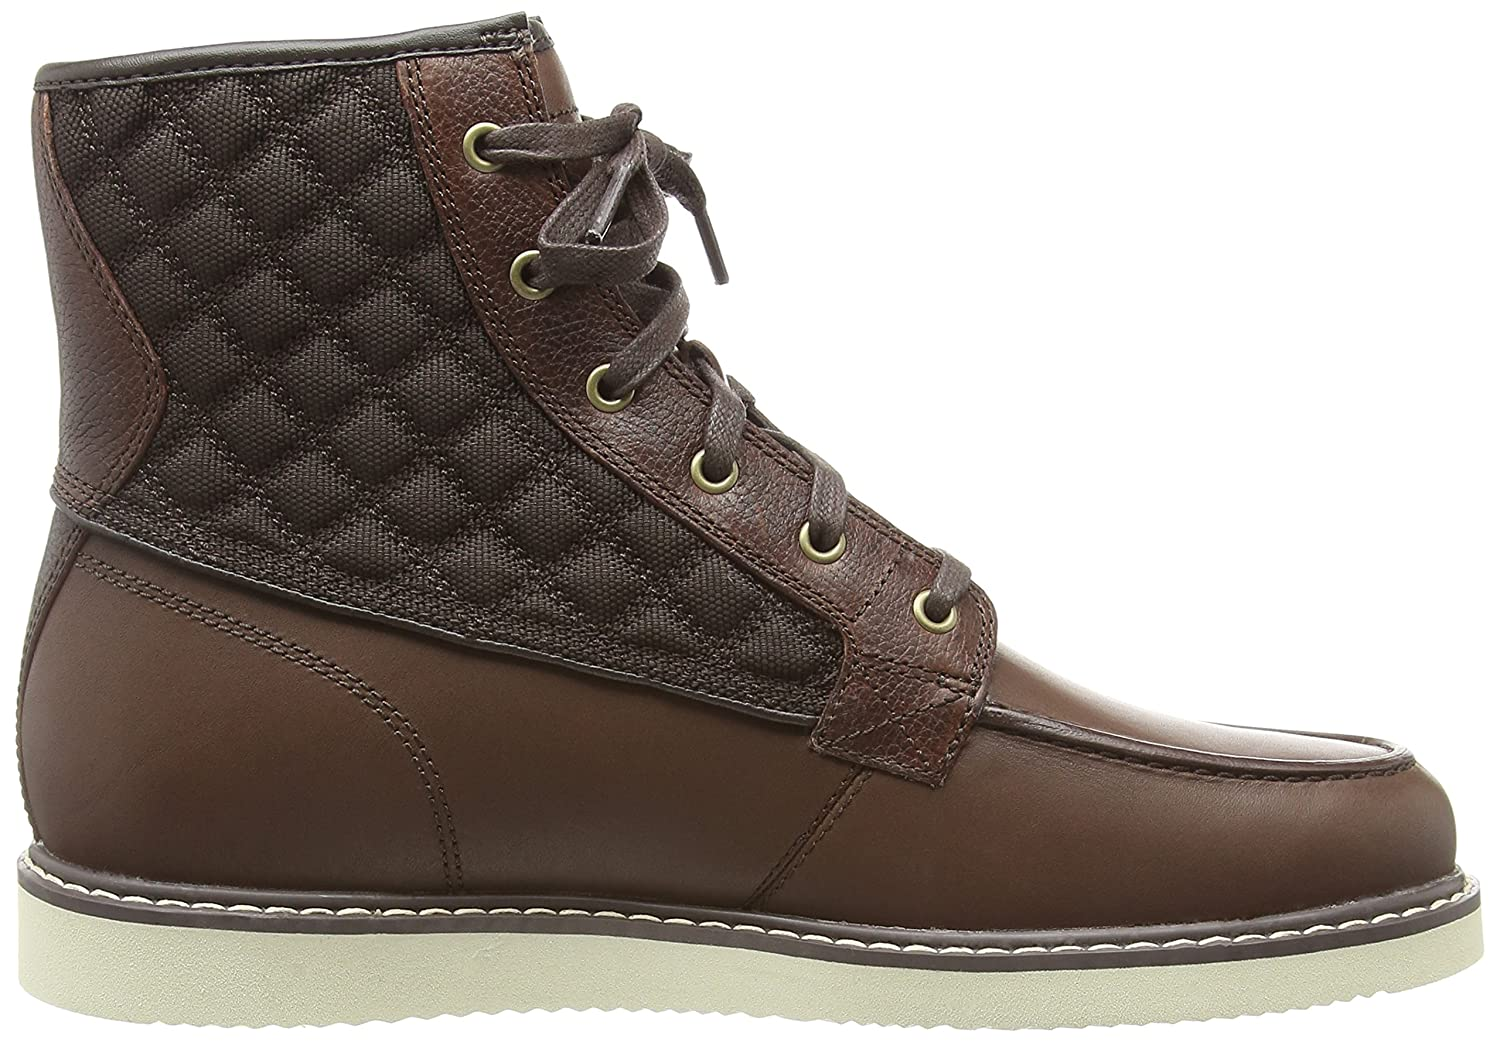 Timberland Newmarket FTB_Newmarket Moc Toe 6 in, Men's Ankle Boots, Brown ( Dark Brown), 14.5 UK (50 EU): Amazon.co.uk: Shoes & Bags